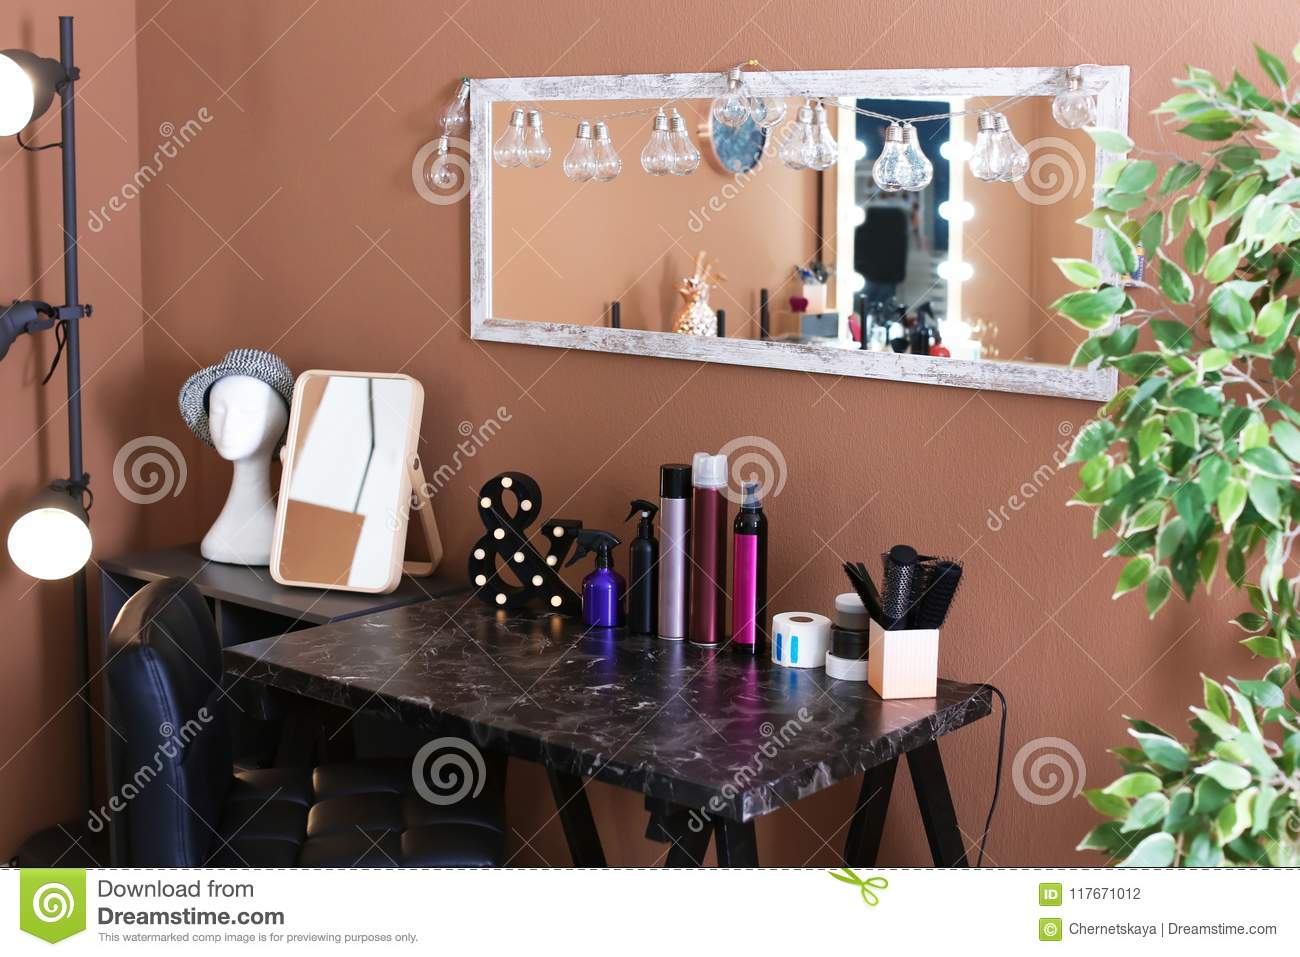 What should be the workplace of the hairdresser (photo)